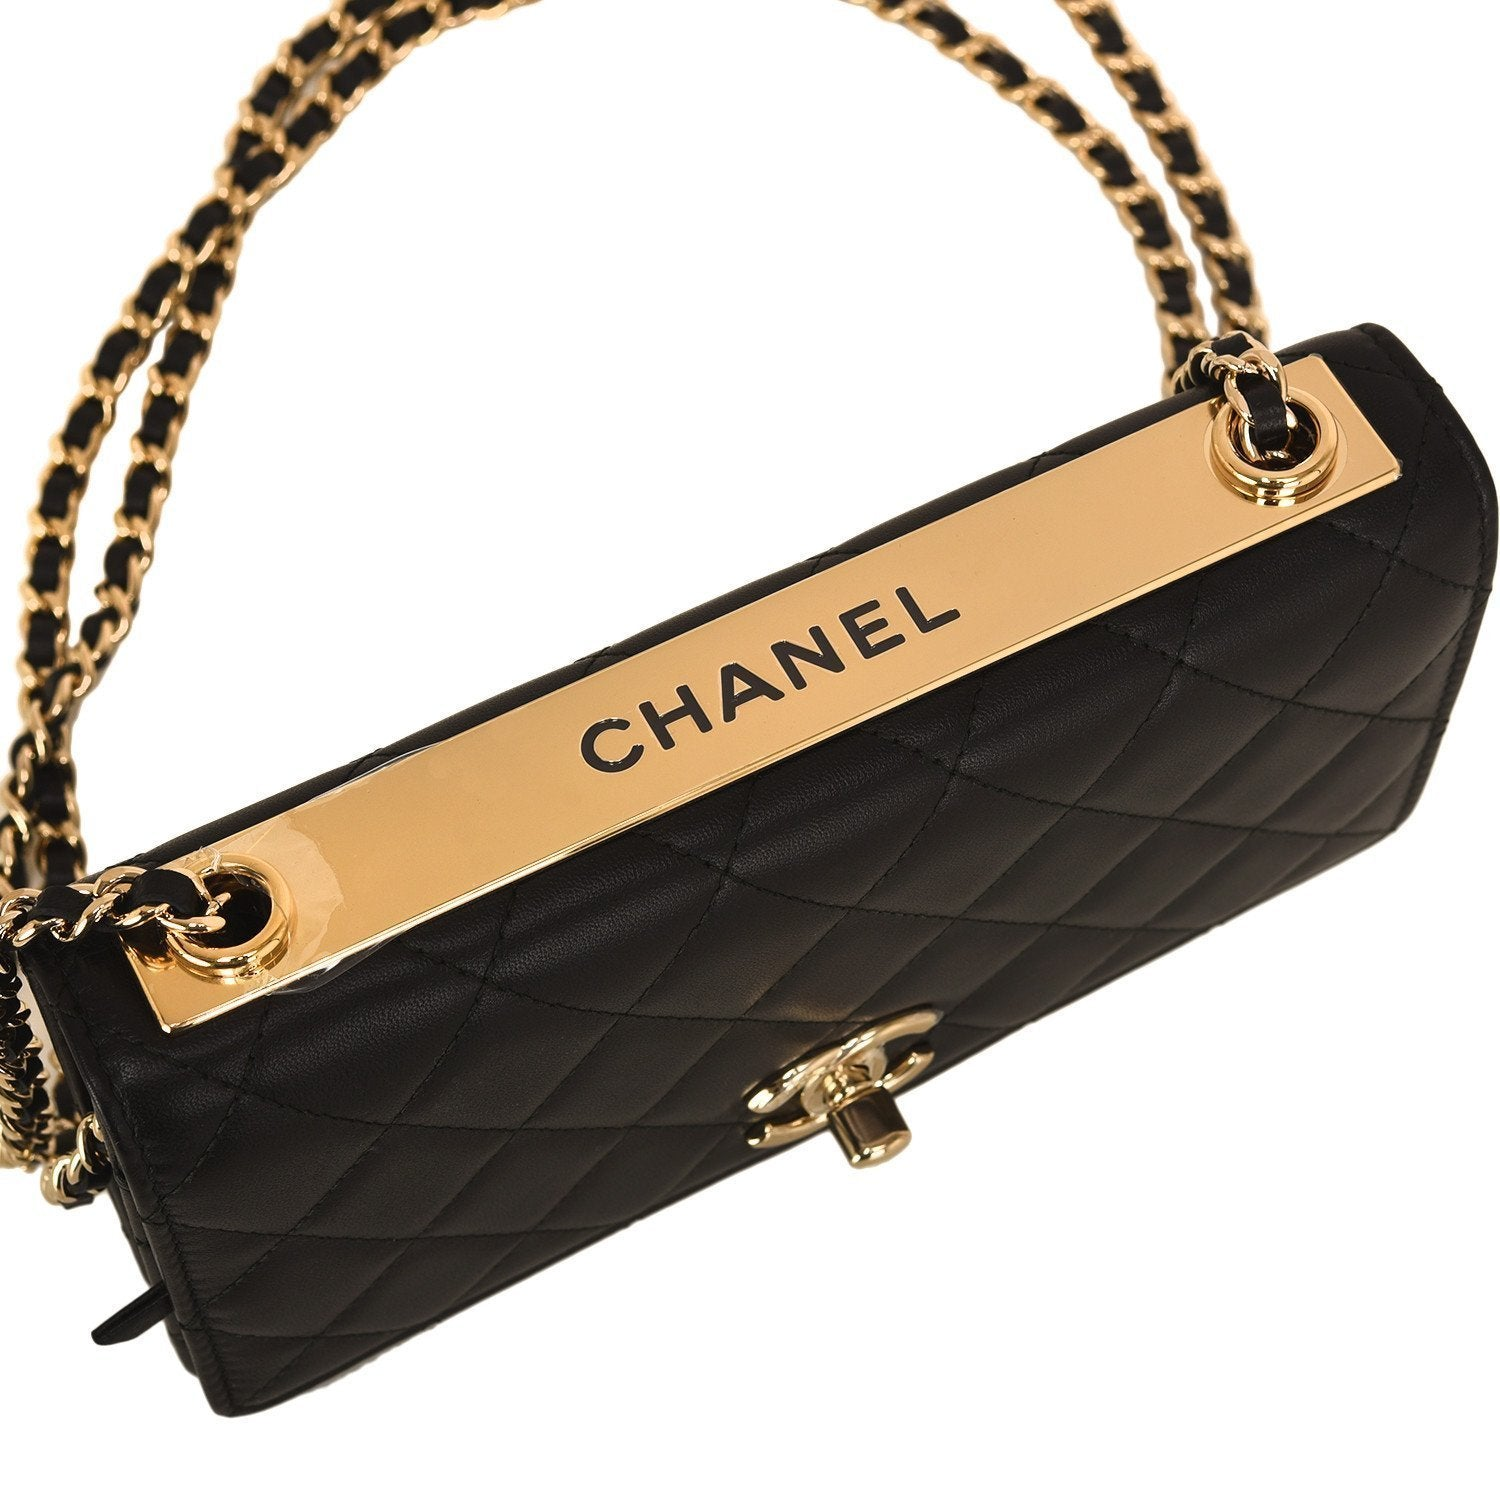 luxury what chain is chanel chains belt gold